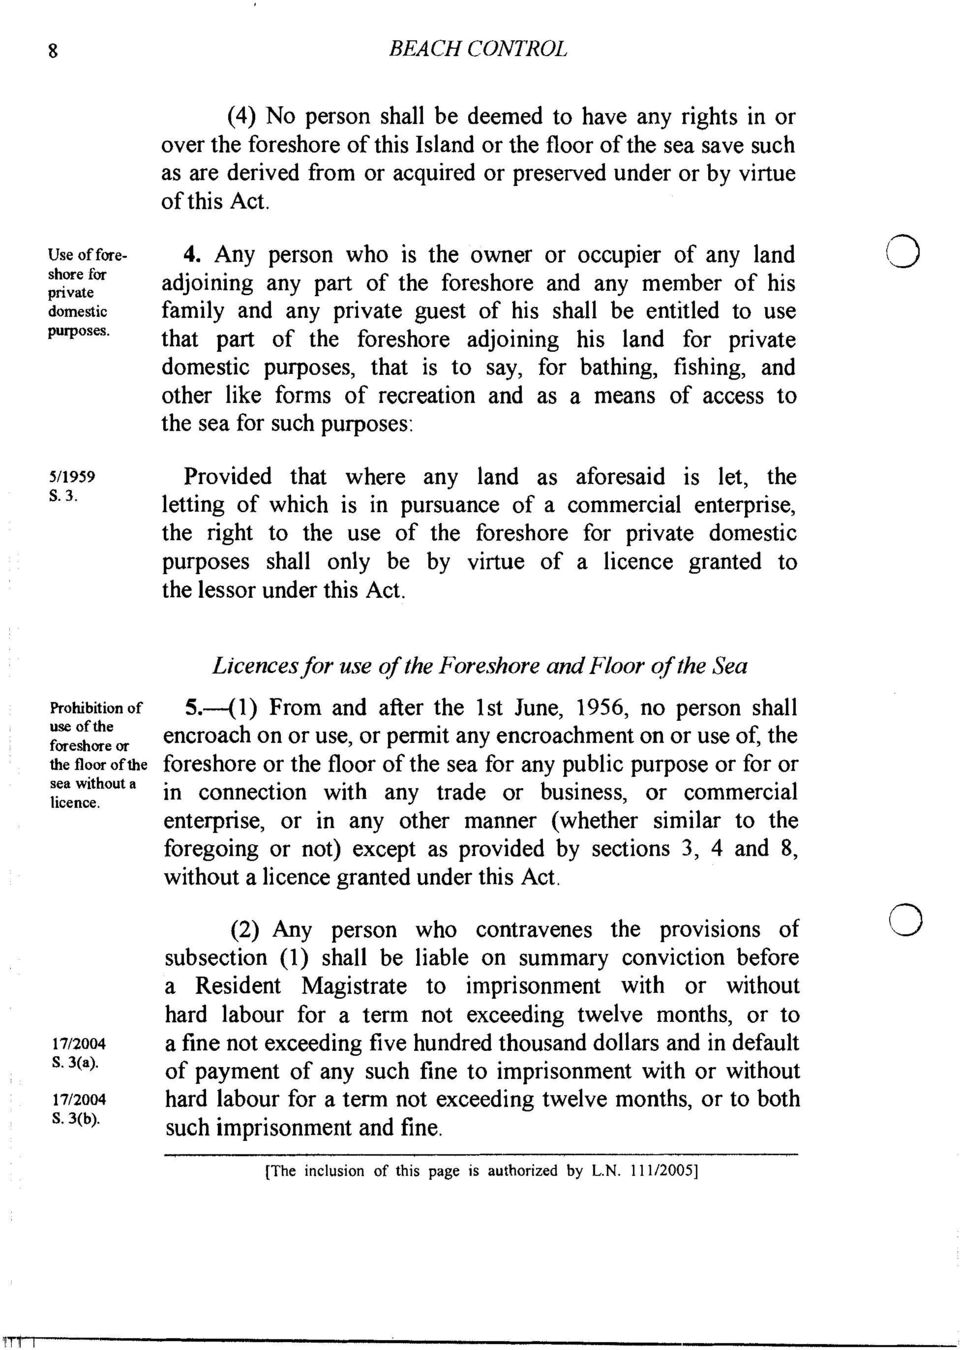 Any person who is the owner or occupier of any land adjoining any part of the foreshore and any member of his family and any private guest of his shall be entitled to use that part of the foreshore